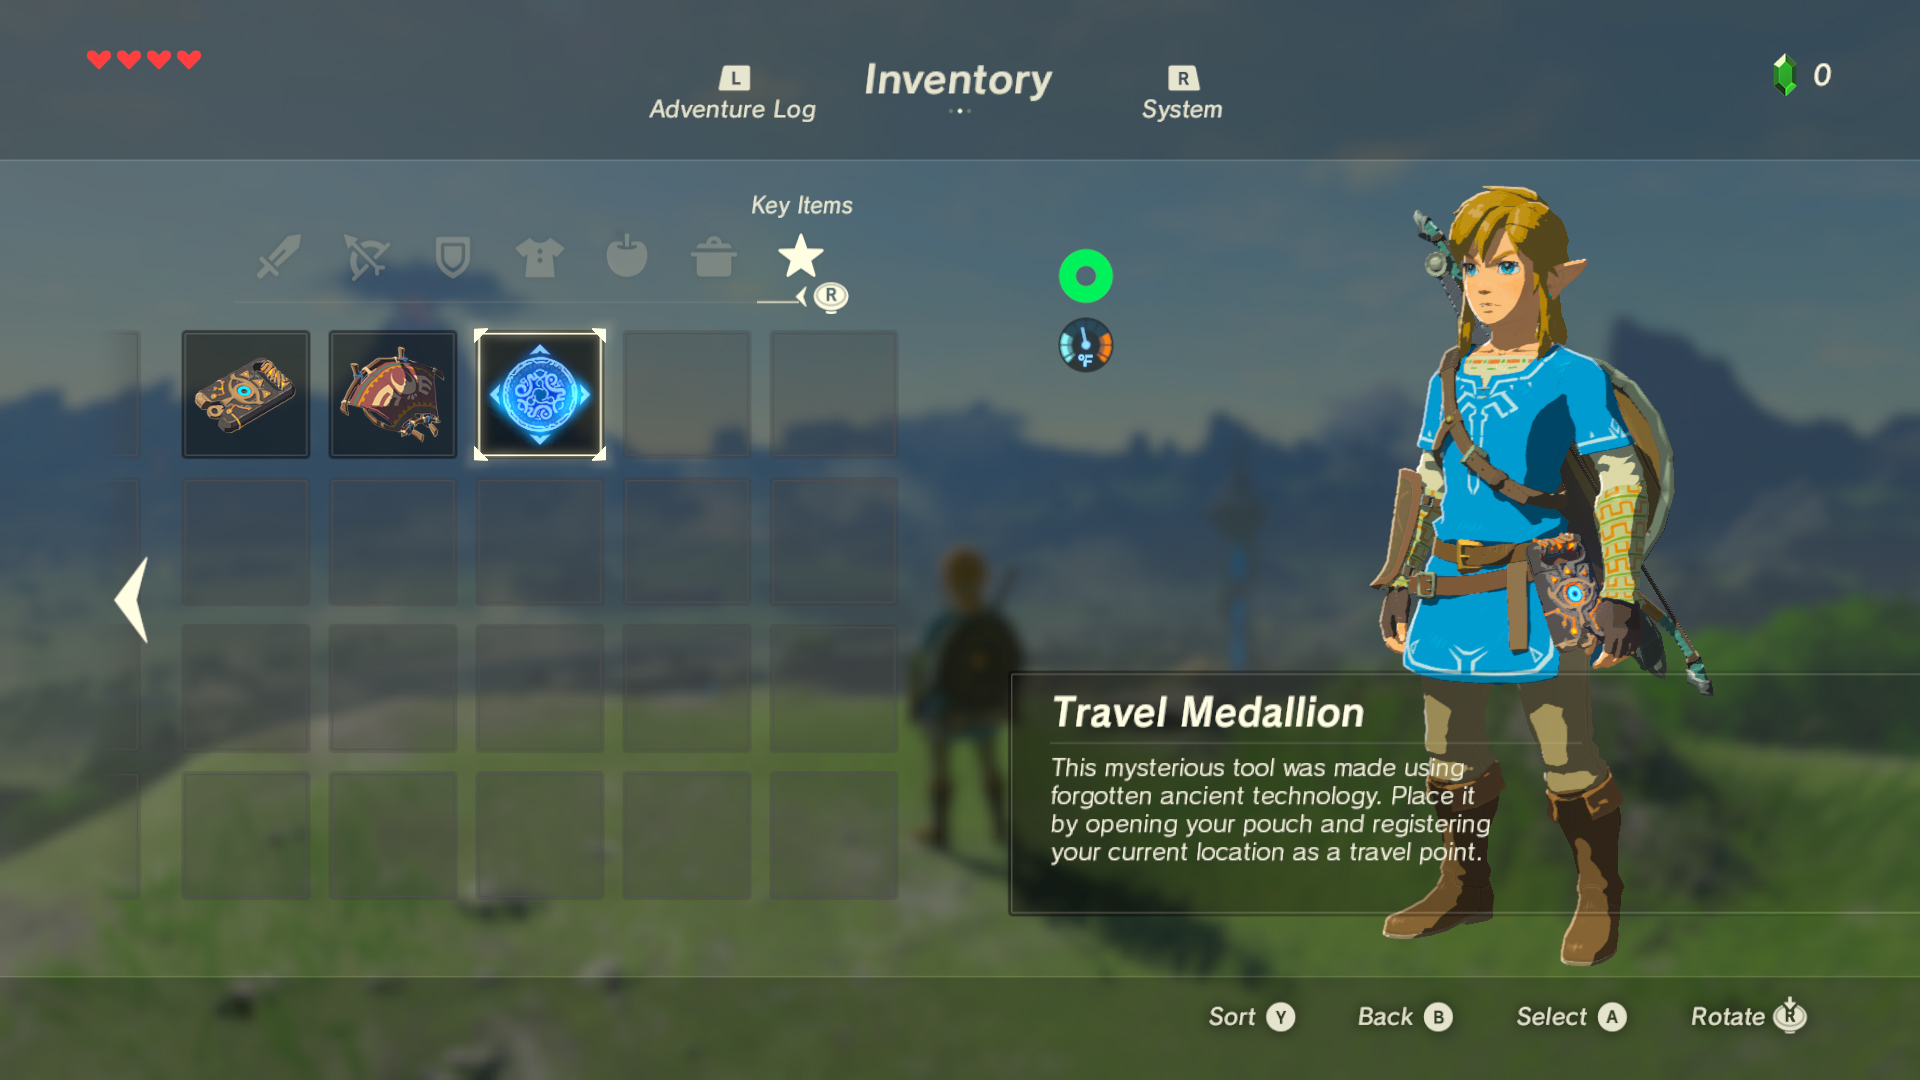 The Legend of Zelda Breath of the Wild Travel Medallion Screen 1